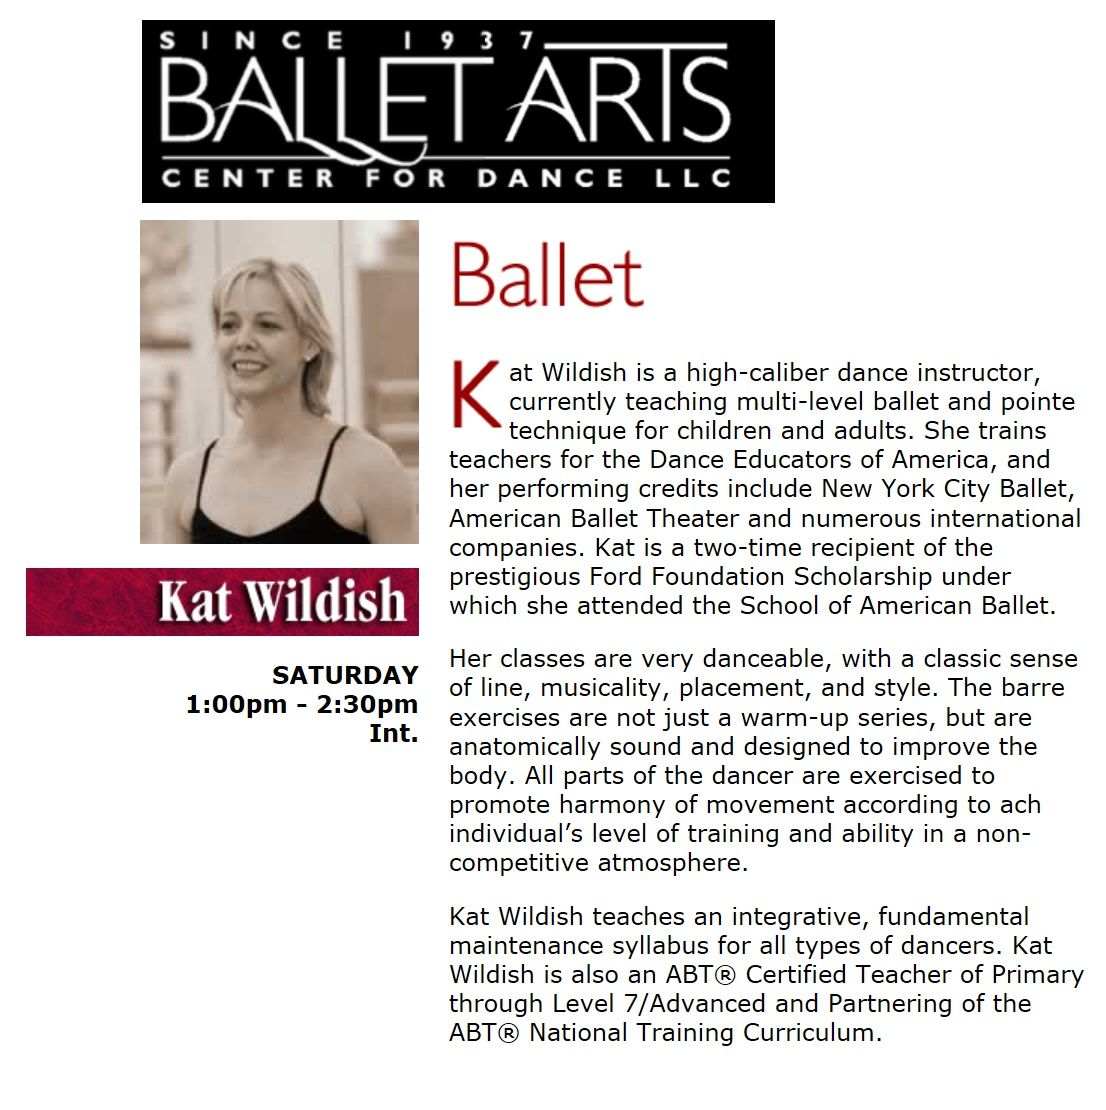 Ballet arts every saturday at 1pm see you at the barre